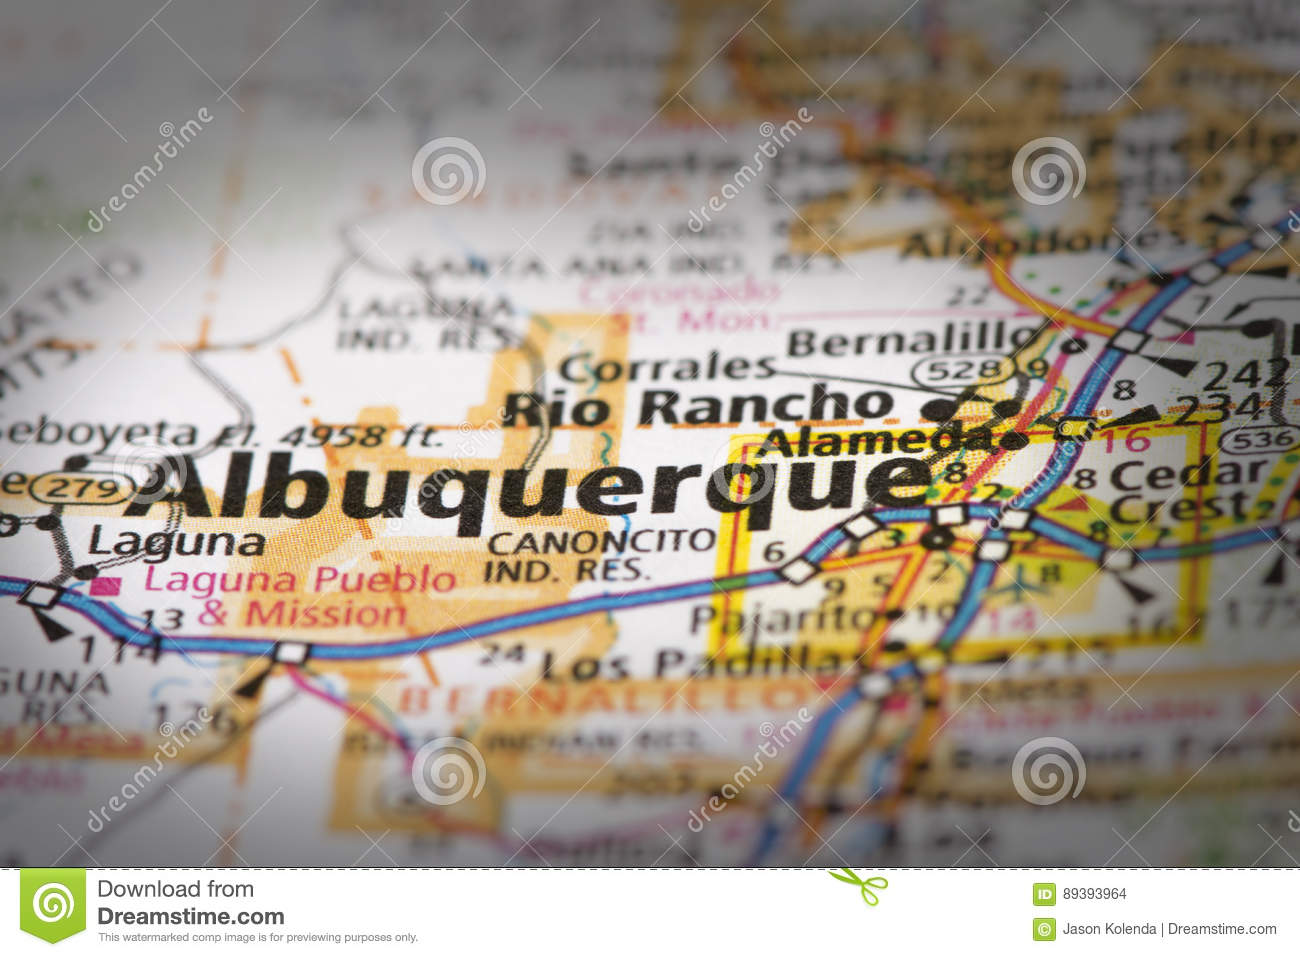 Albuquerque on map stock photo. Image of geography, closeup - 89393964